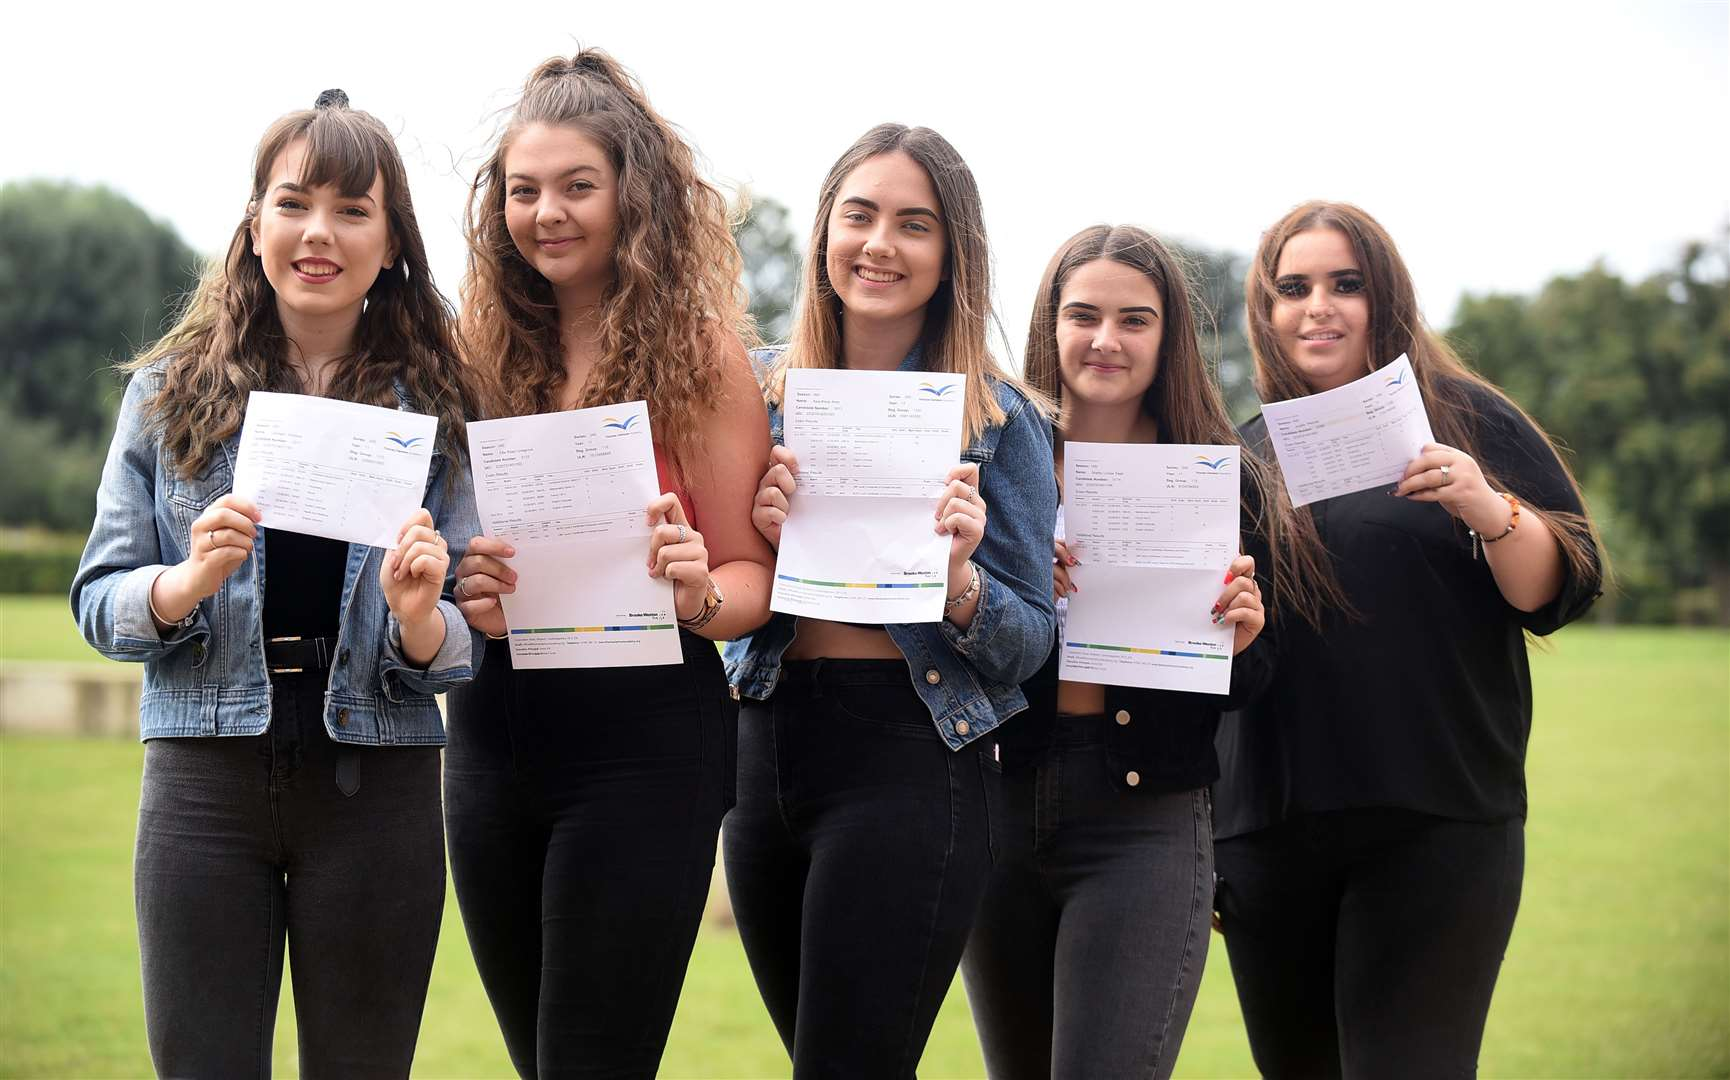 From left: Clodagh Williams, Ellie Lovegrove, Kala Amor, Jurgita Pleinyte, and Shelby Sage with their results.